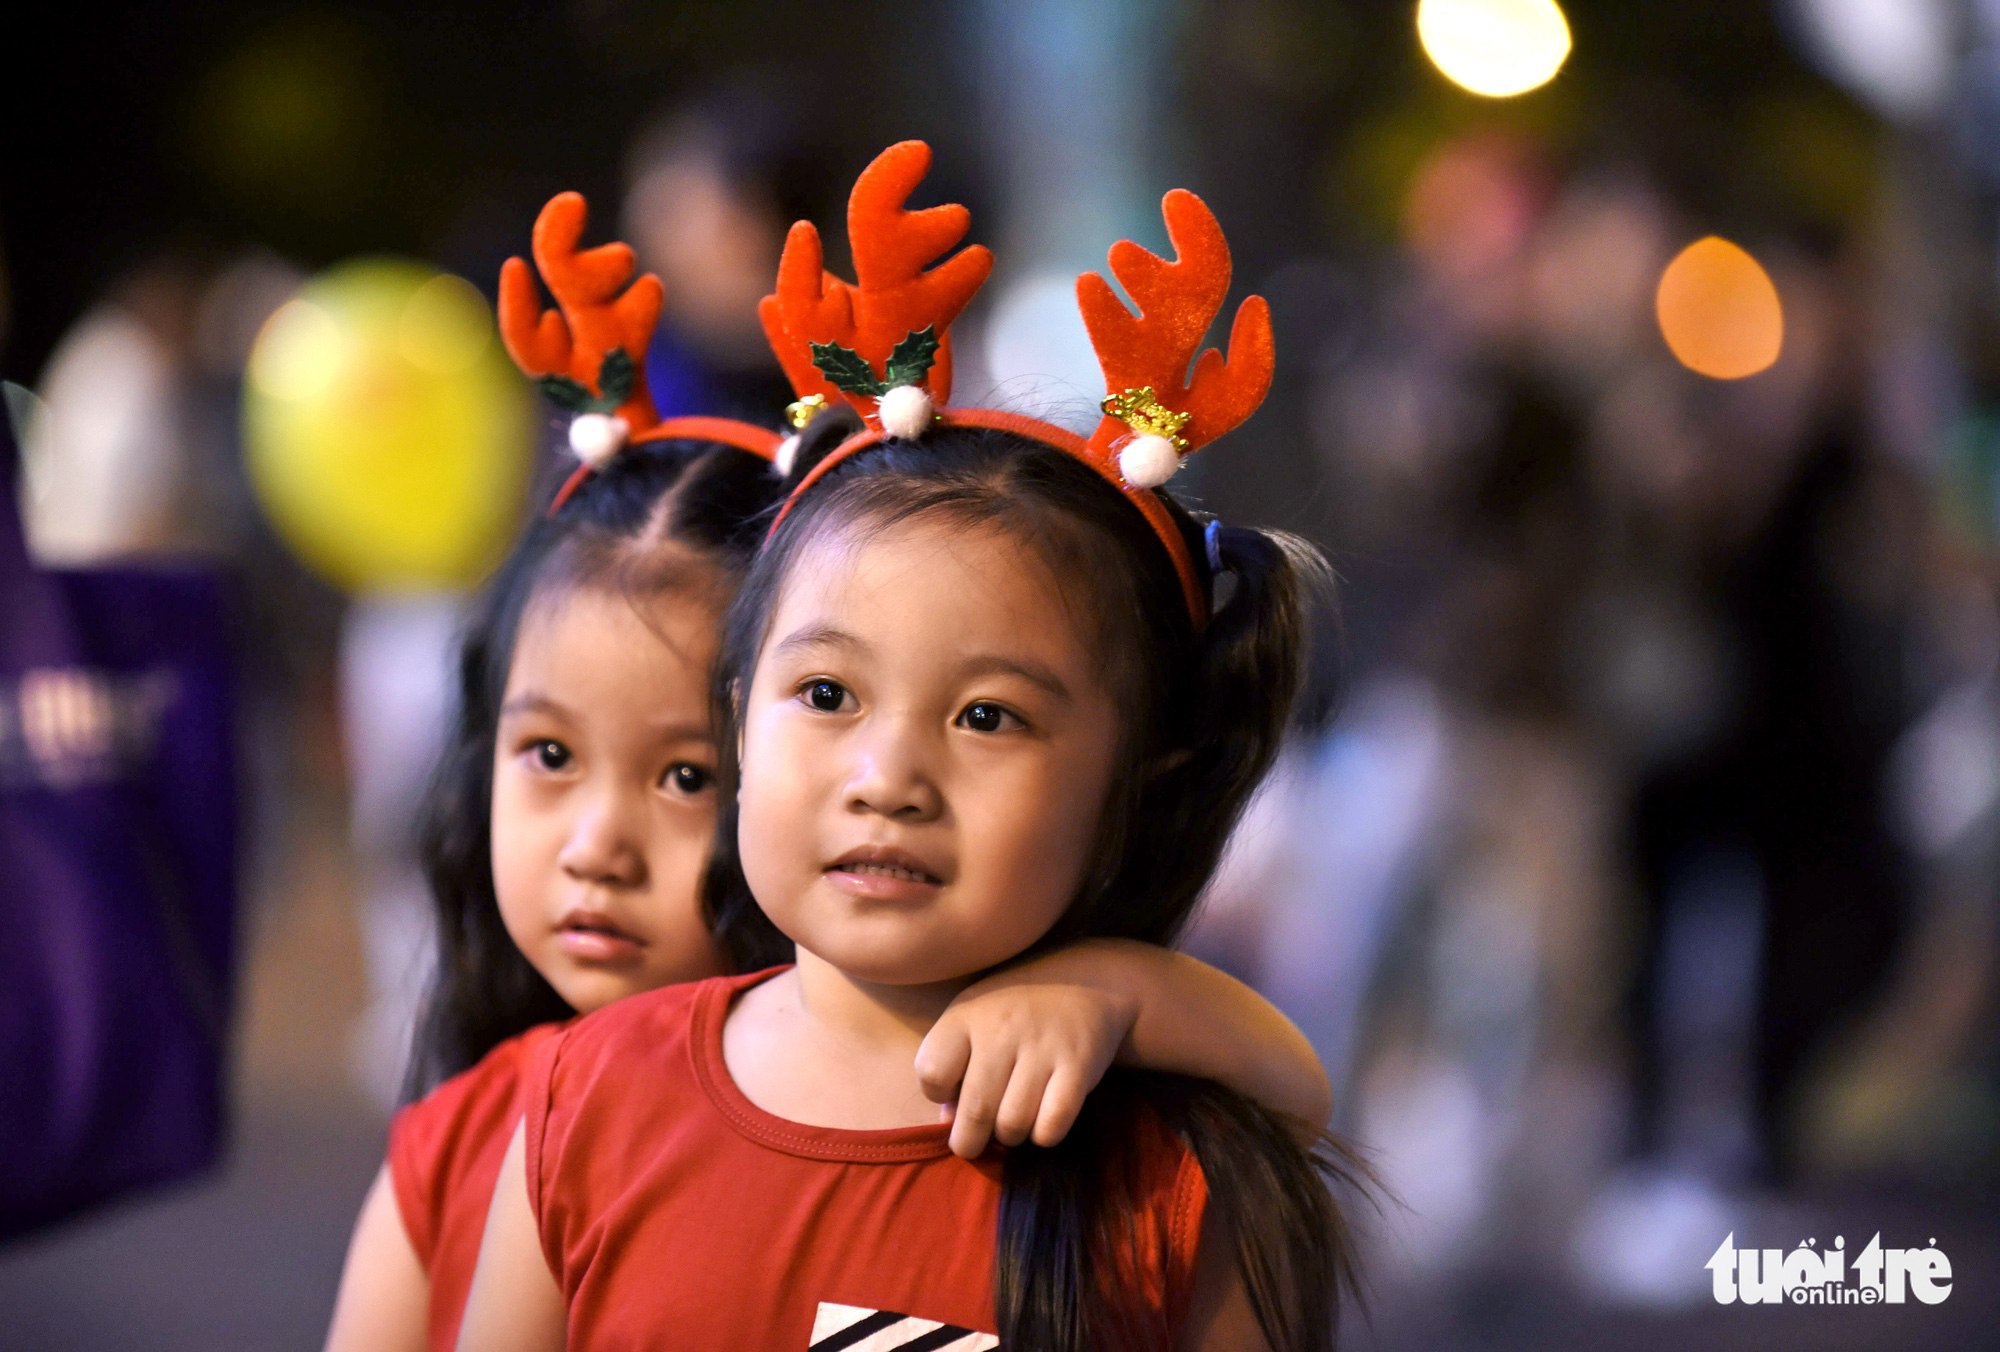 Two little girls are dressed in their holiday outfits in Ho Chi Minh City on Christmas Eve, December 24, 2019.